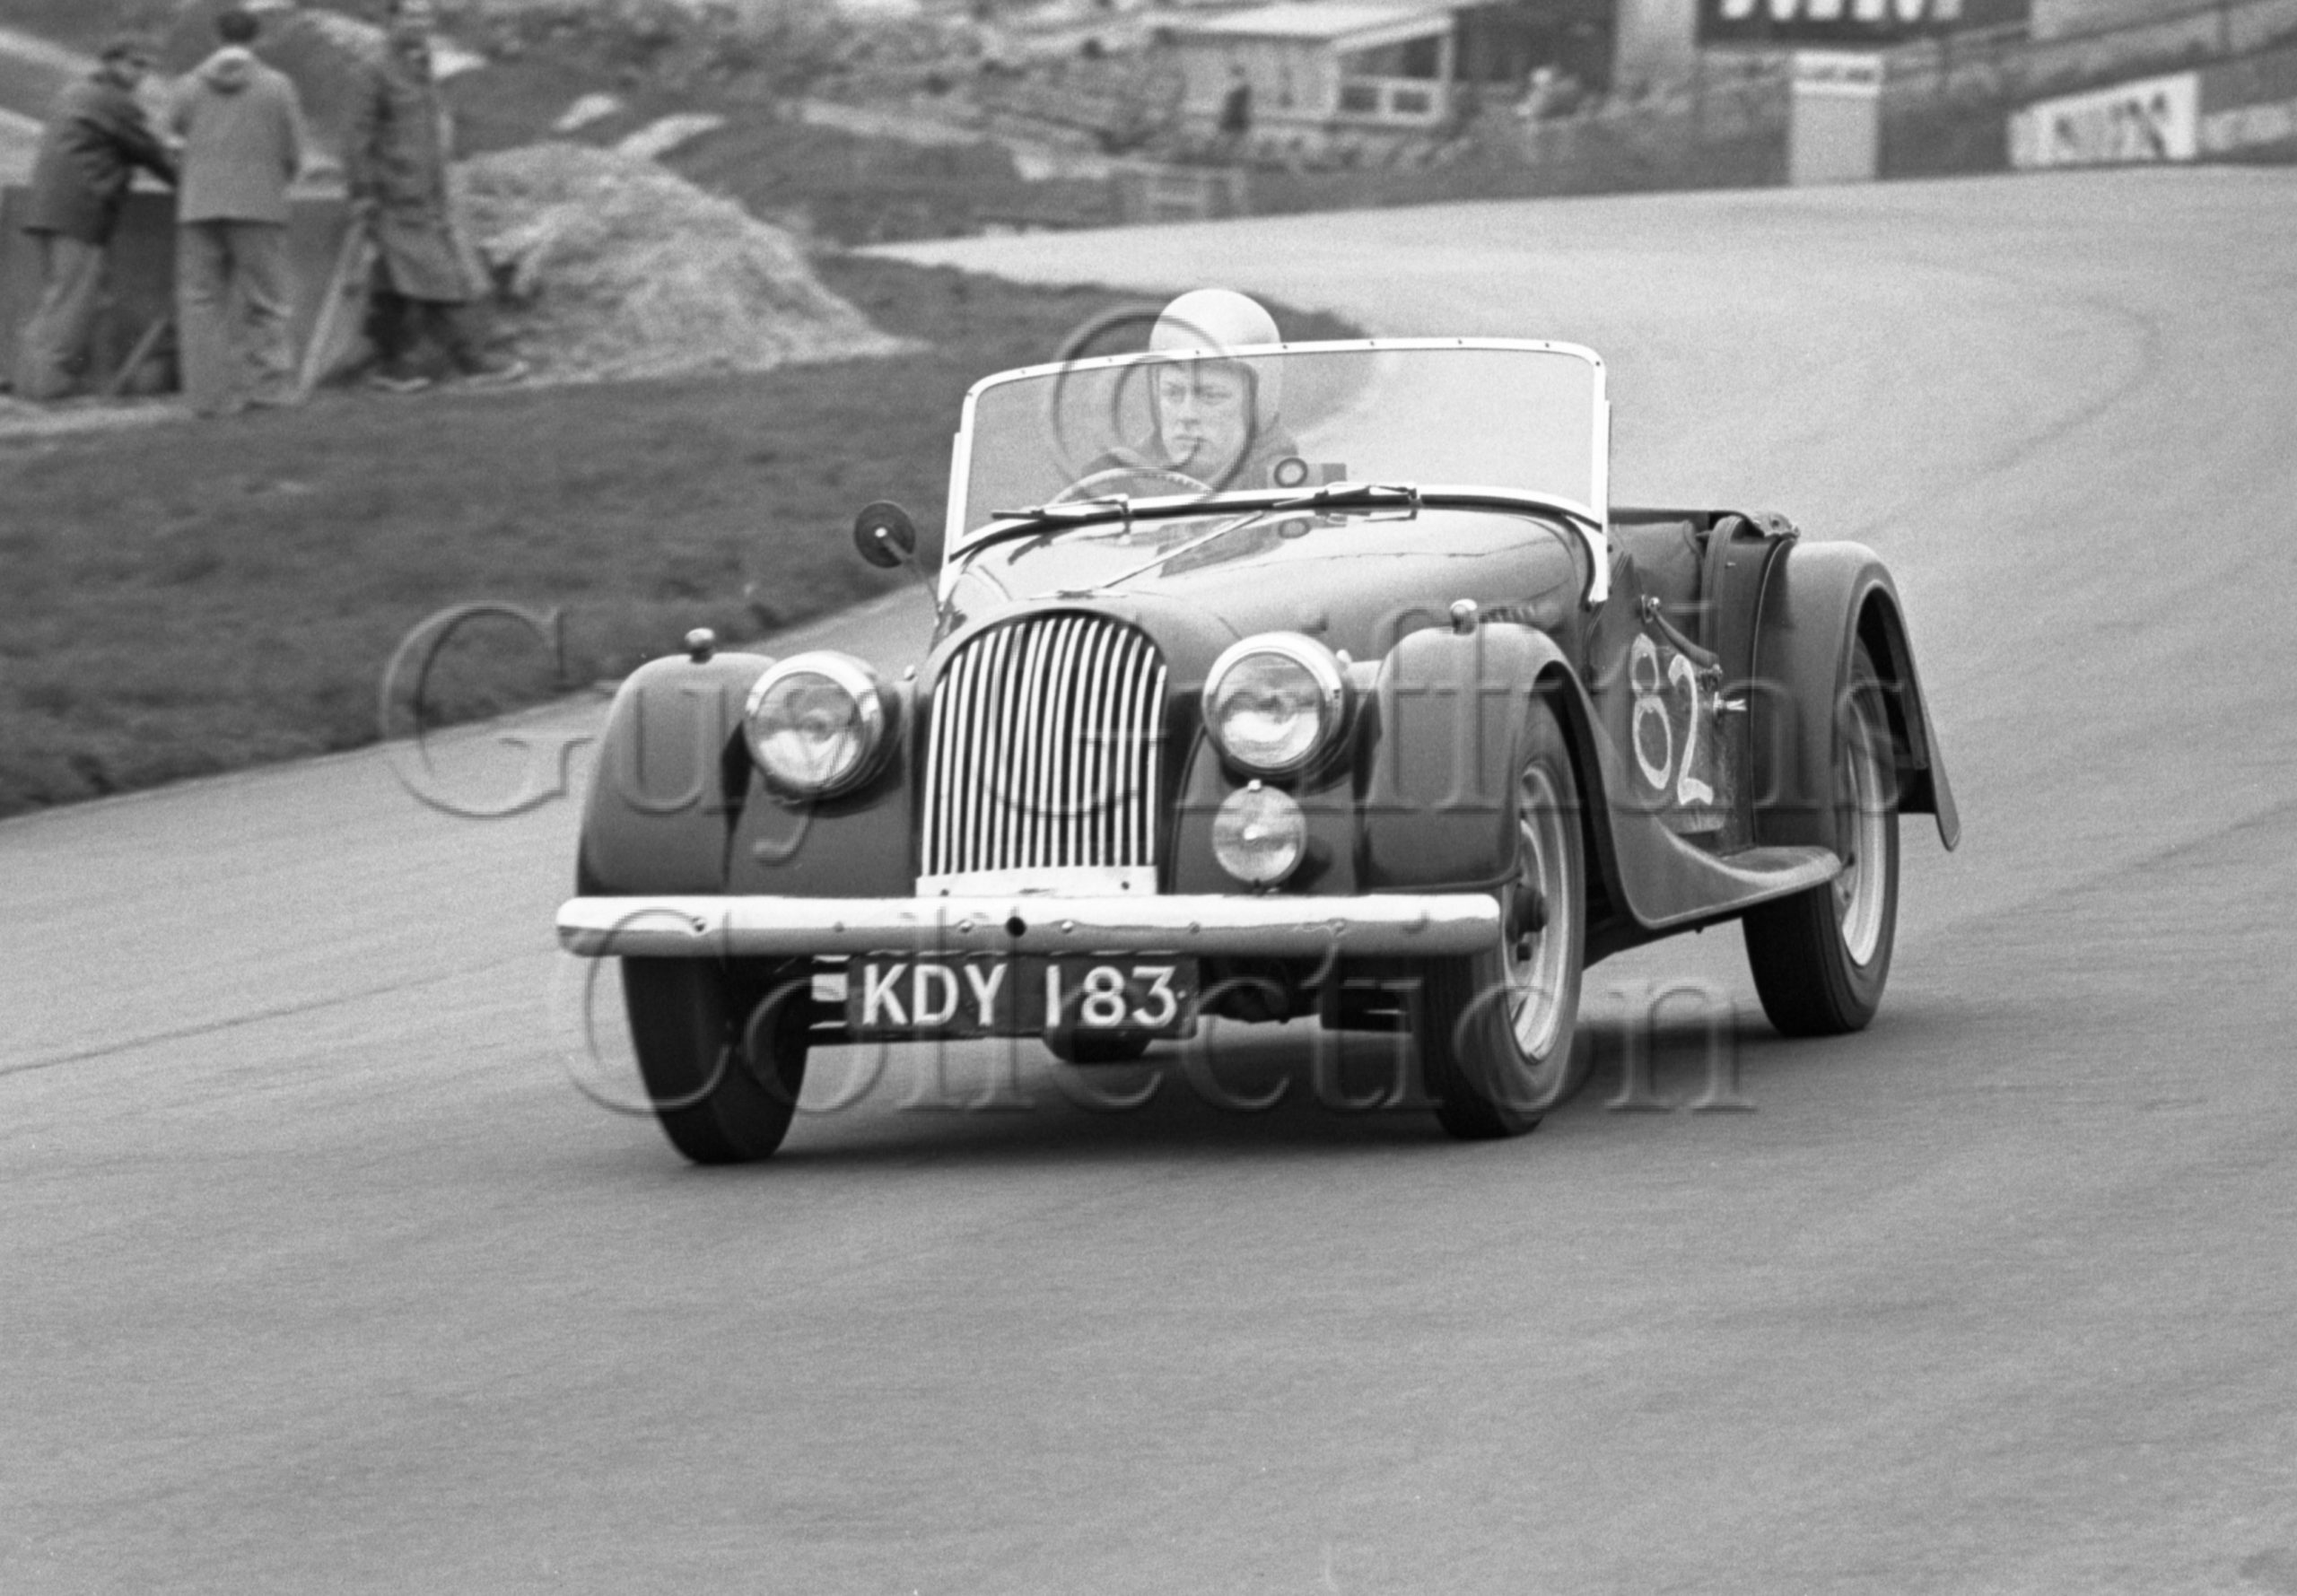 80-1002—D-Baldock–Morgan–Brands-Hatch–12-04-1964.jpg - Guy Griffiths Collection